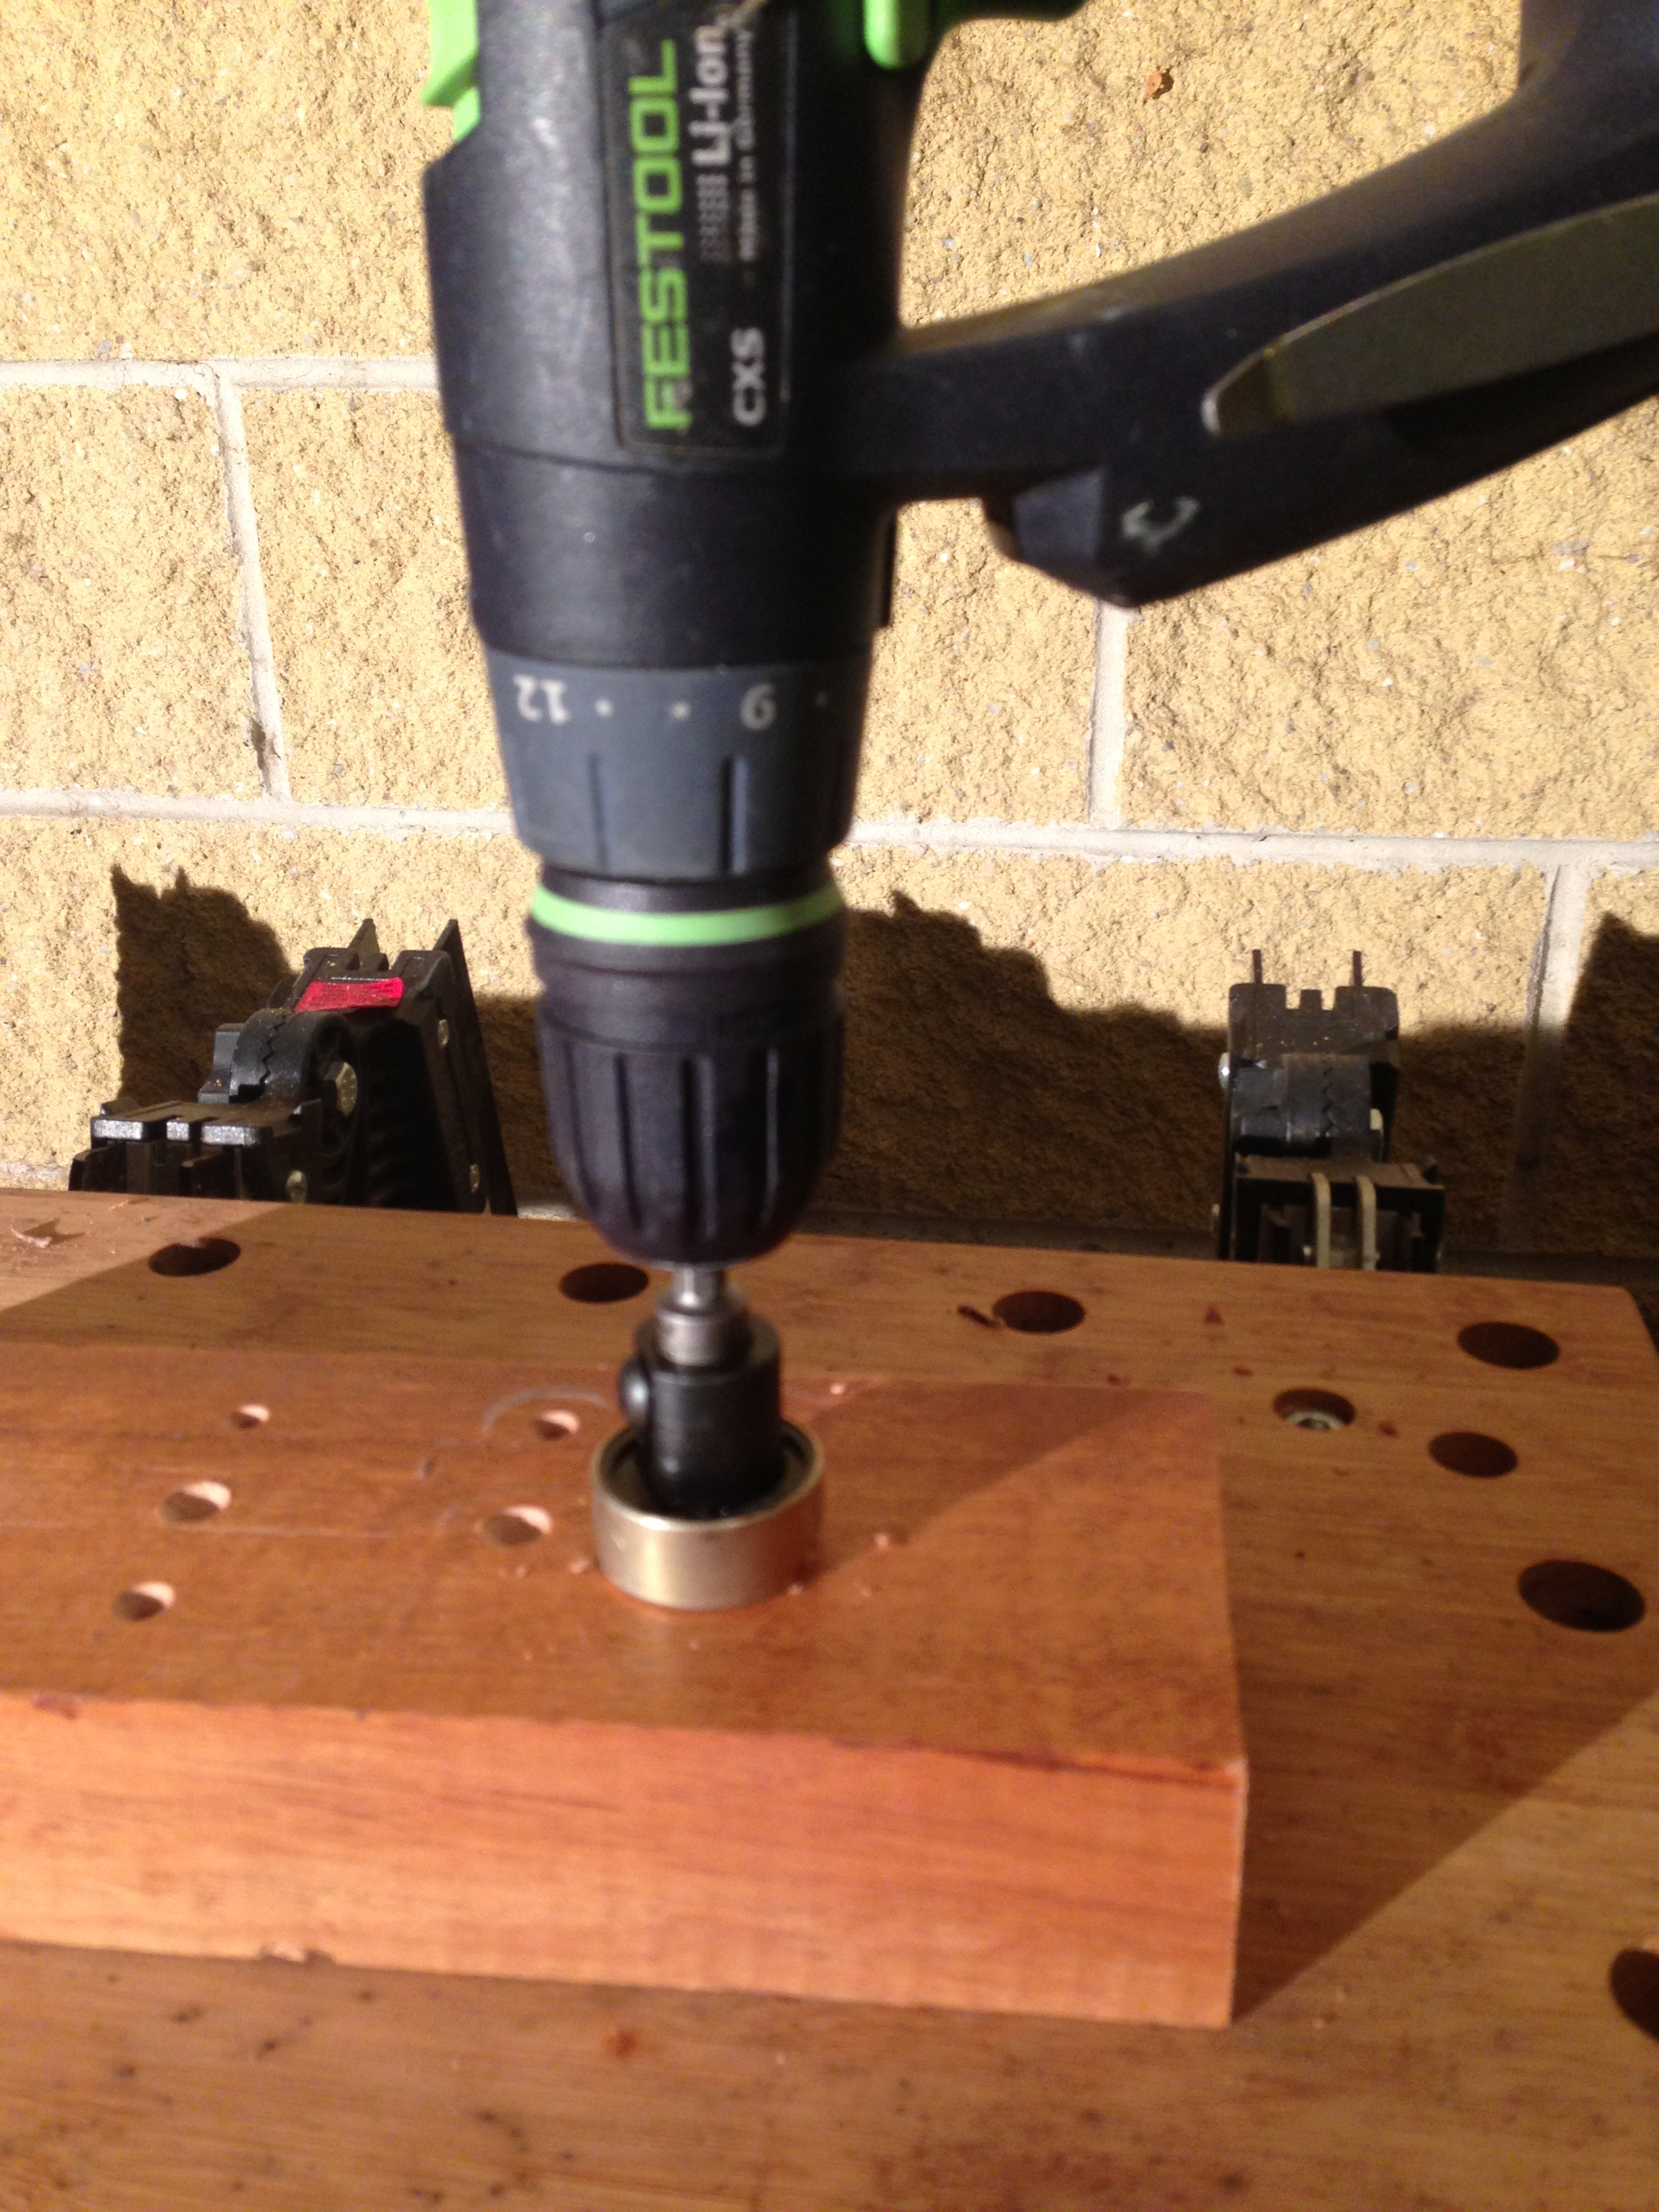 countersink drill bit with depth stop. photo 17-06-13 22 21 53 countersink drill bit with depth stop e